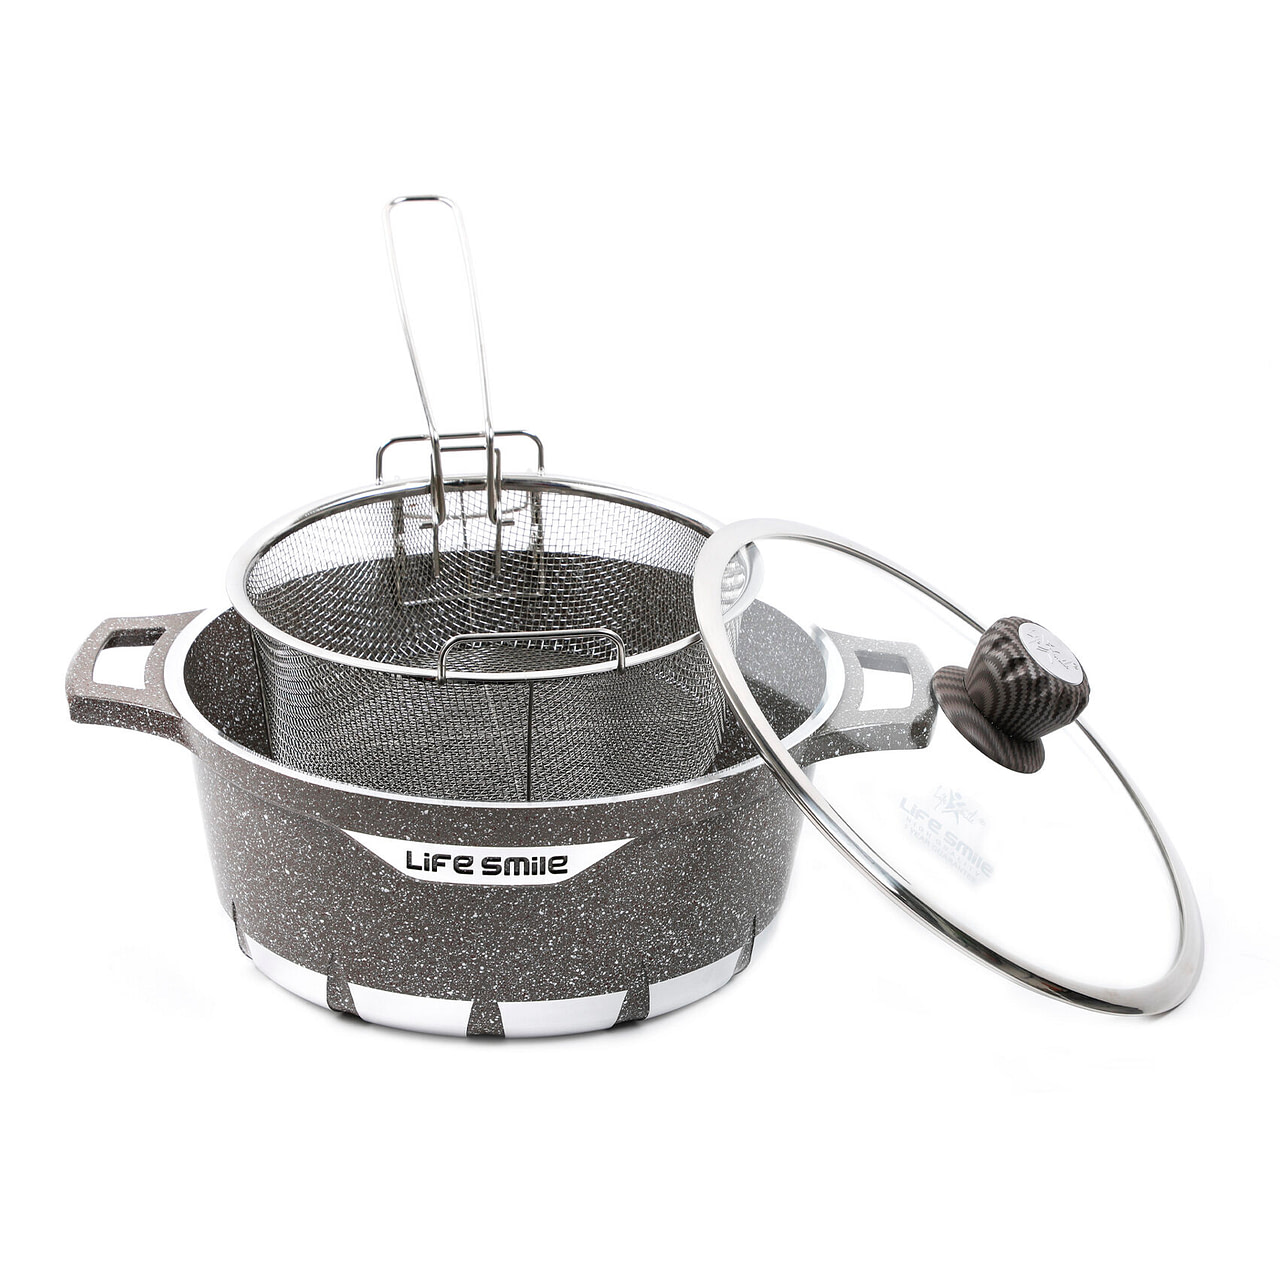 Life Smile Soup Pot with Granite Coating and Frying Basket